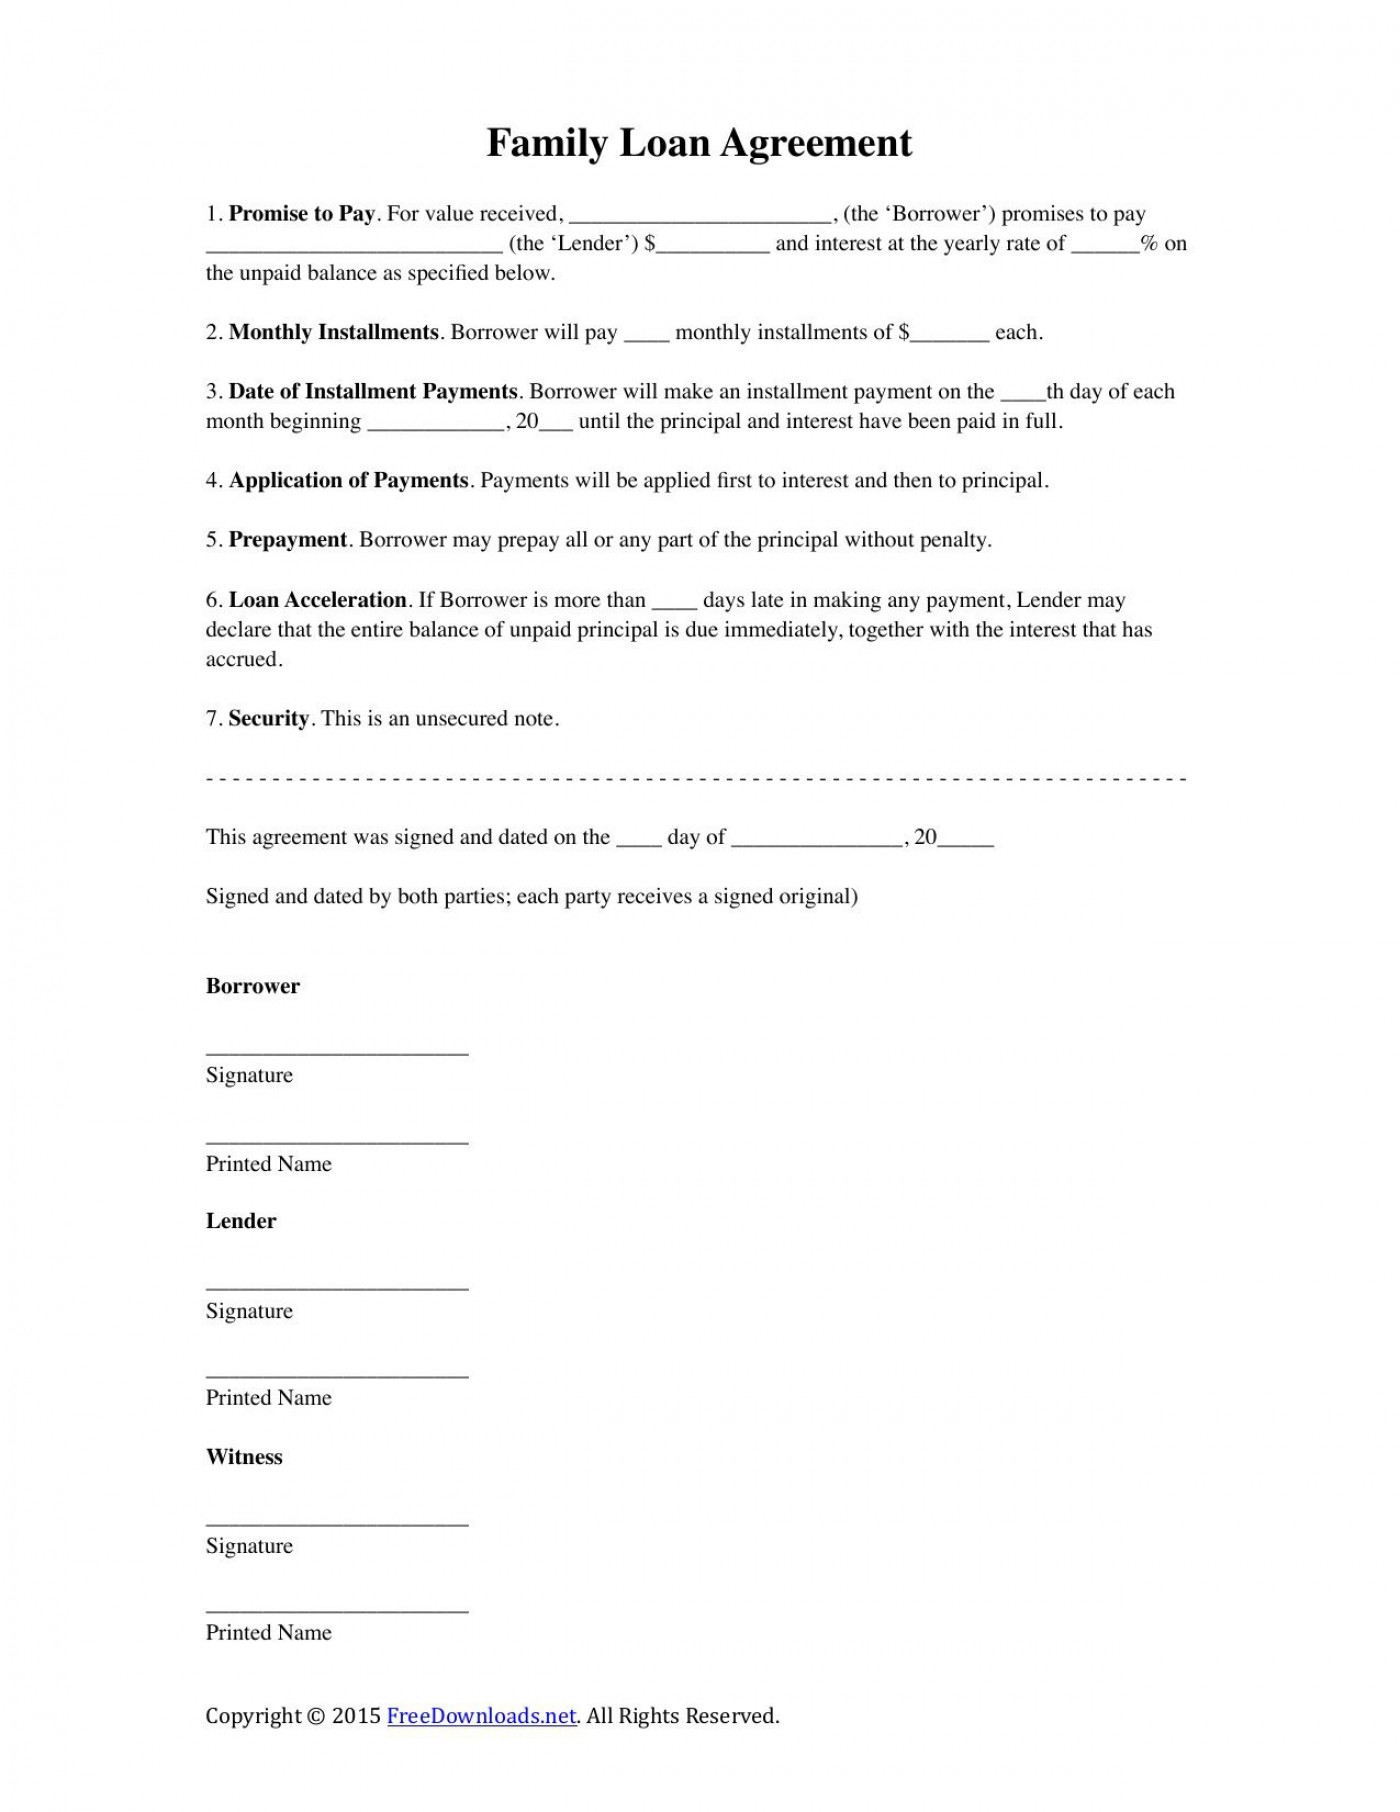 002 Stunning Family Loan Agreement Template Highest Clarity  Nz Uk Free1400